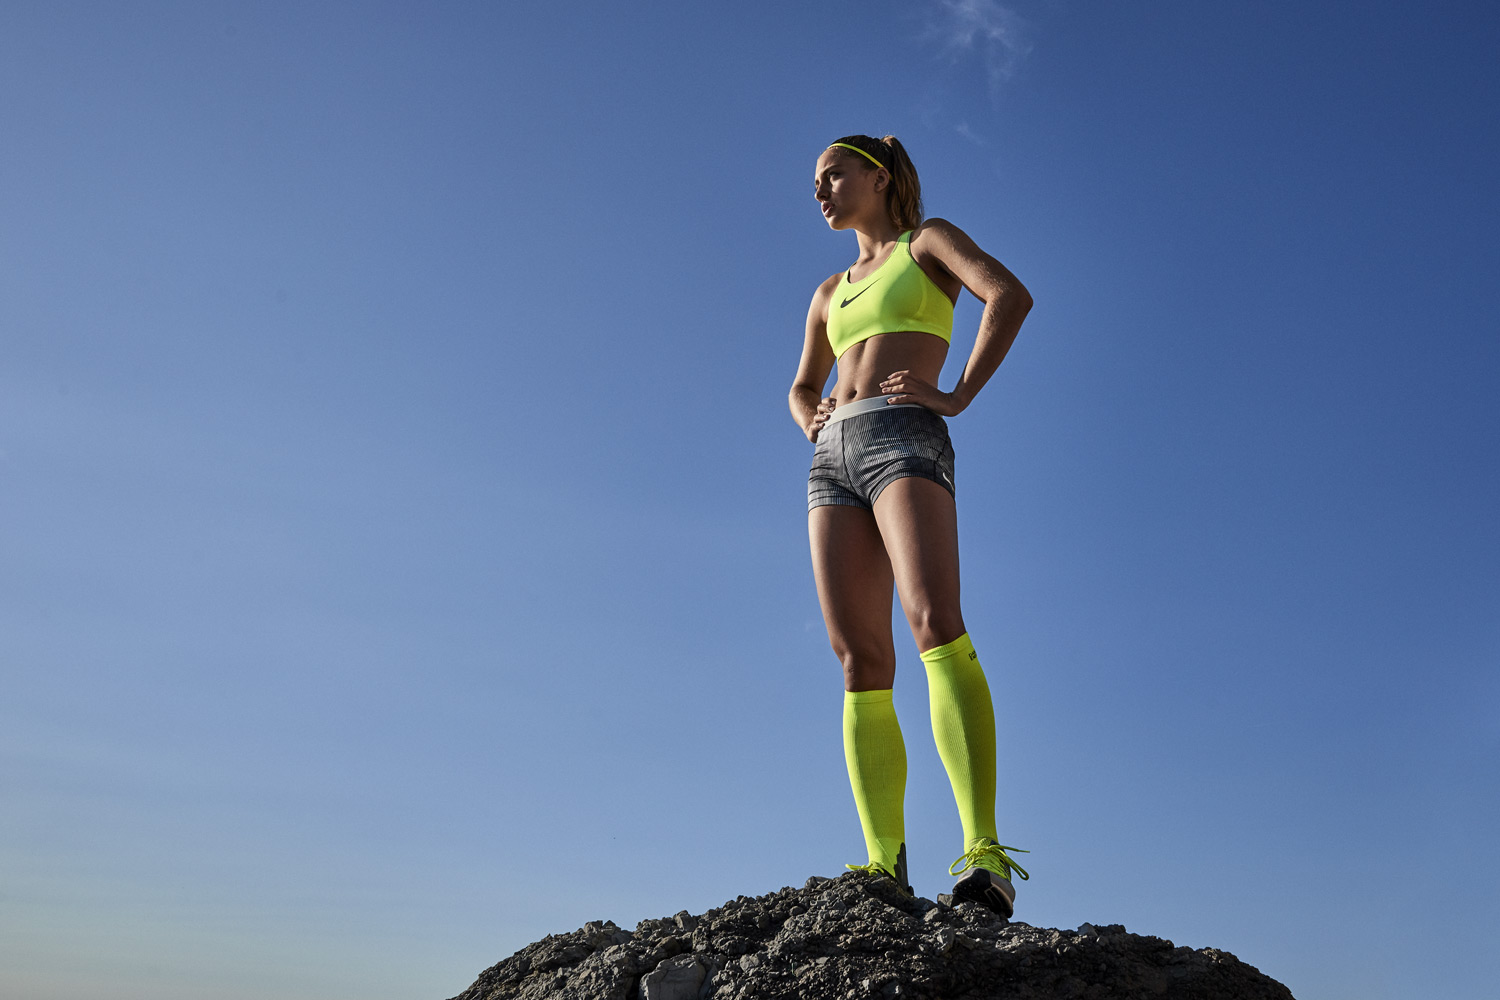 Fit for Jump Astrid M Obert